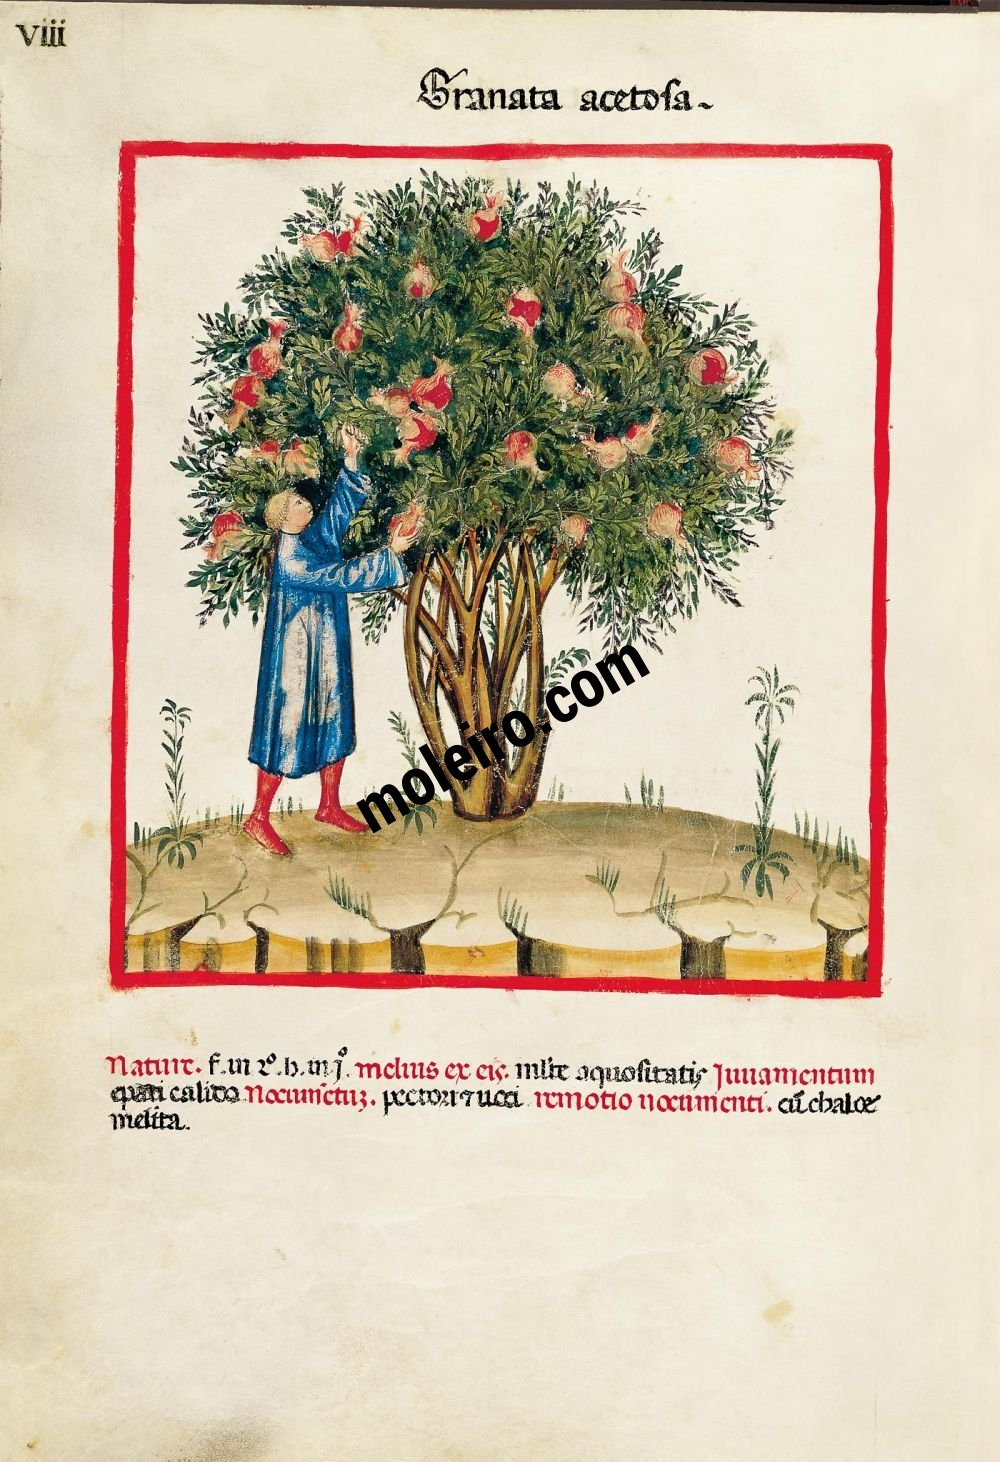 Theatrum Sanitatis f. VIII, Acid pomegranates